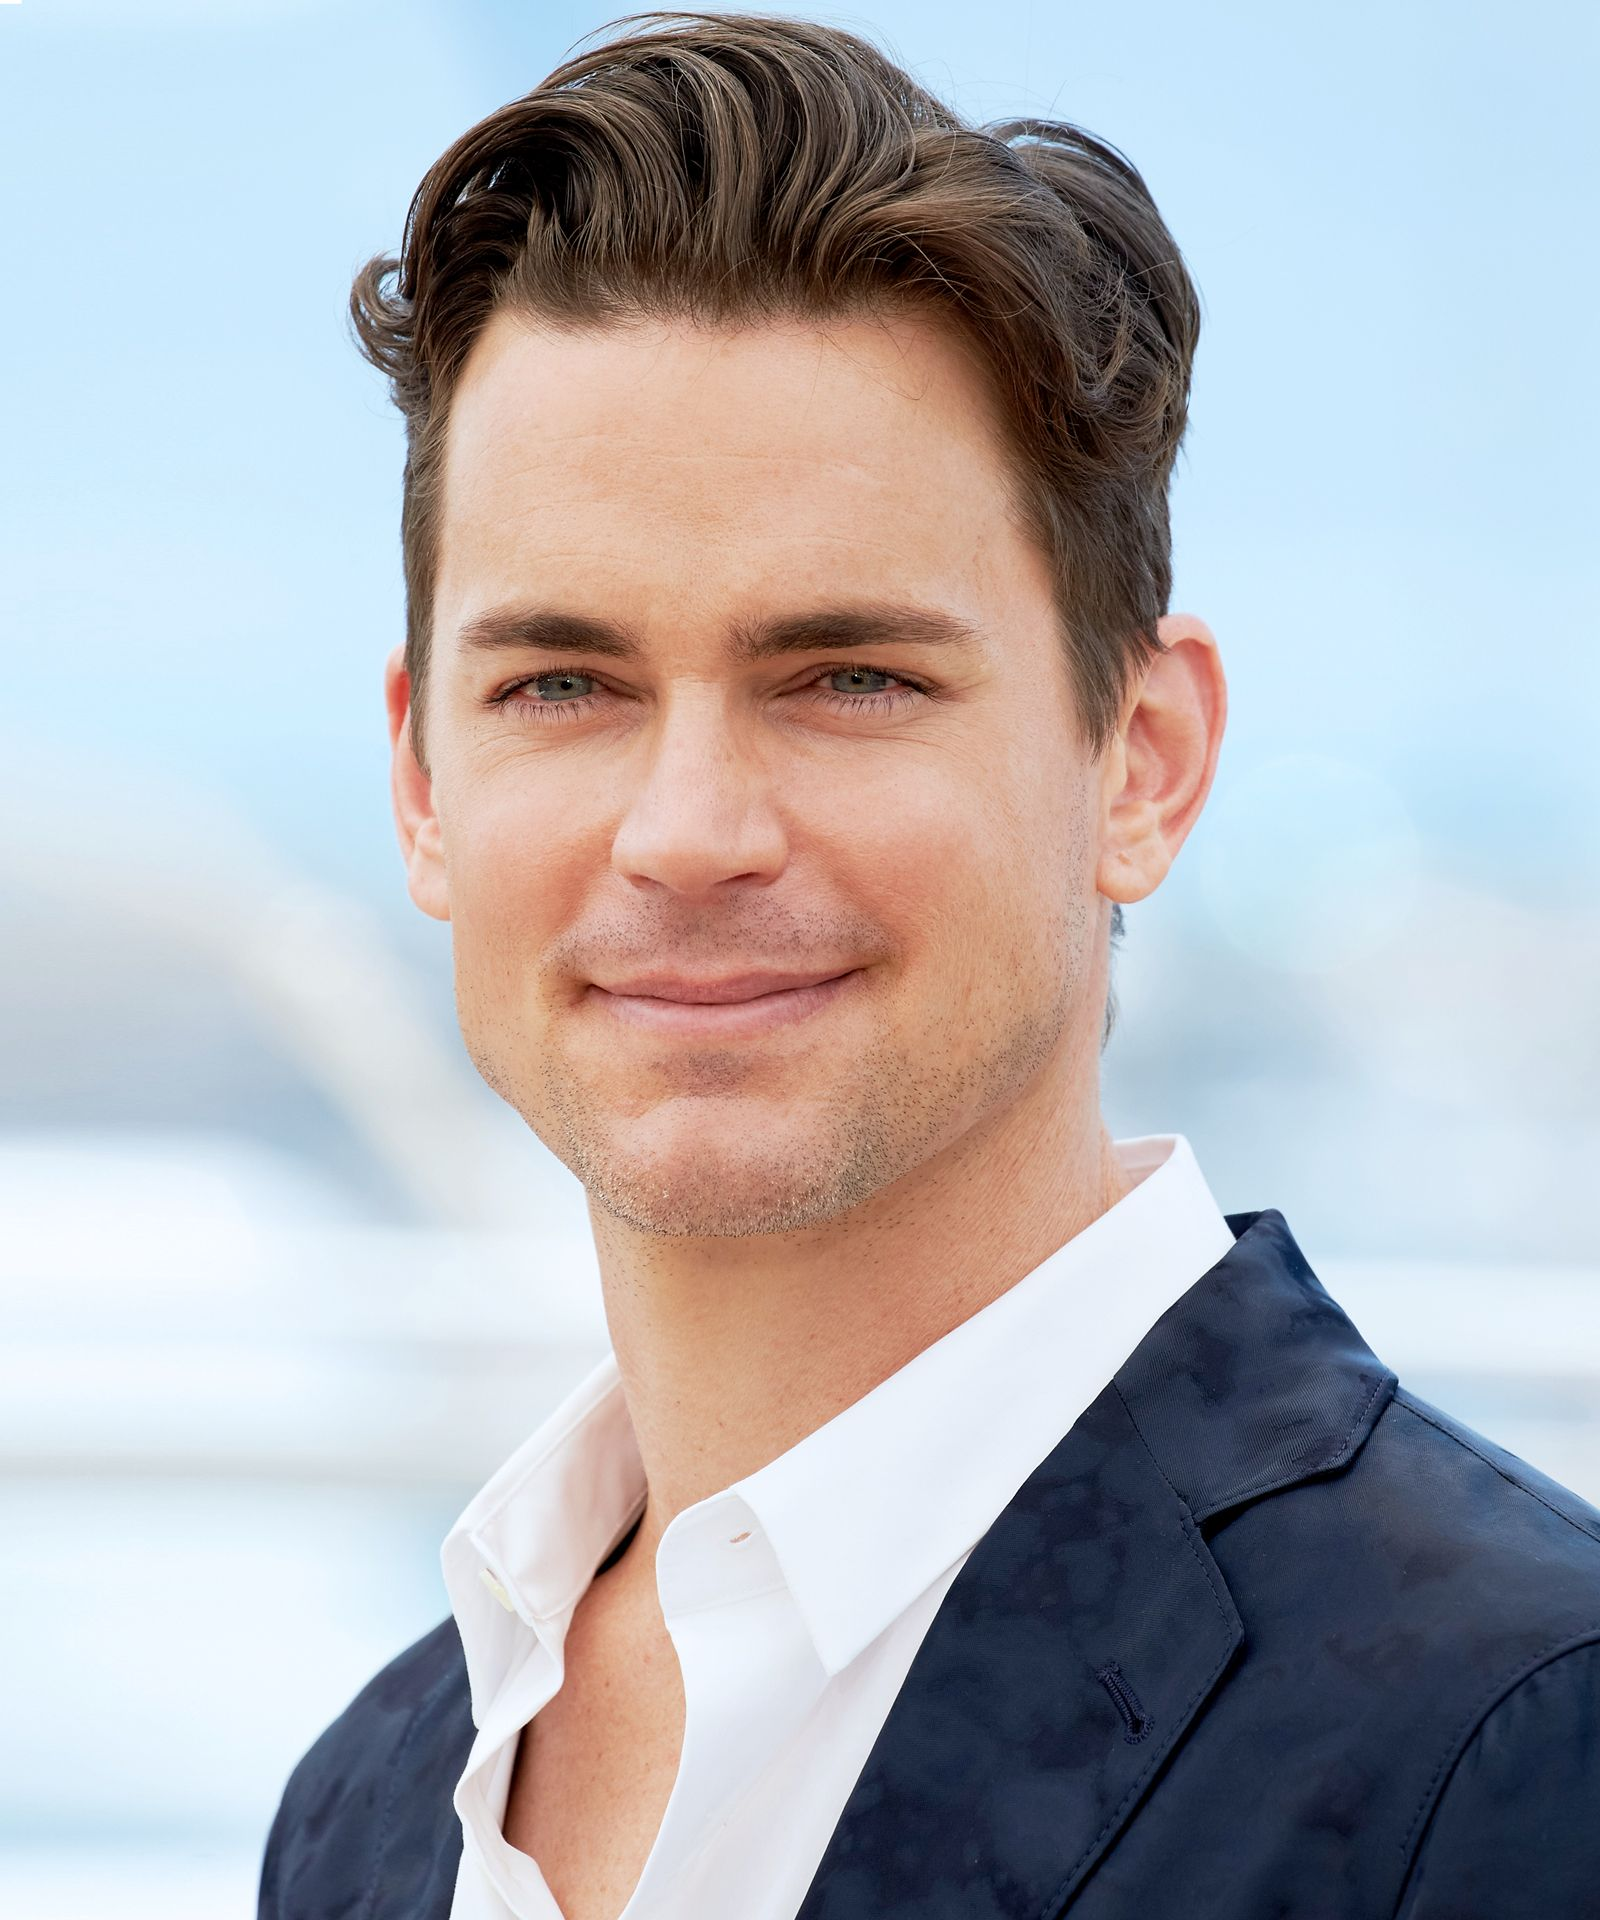 Happy birthday to Matt Bomer, who turns 39 today. Celebrate by taking a look at Hollywood's hottest celebrity abs.